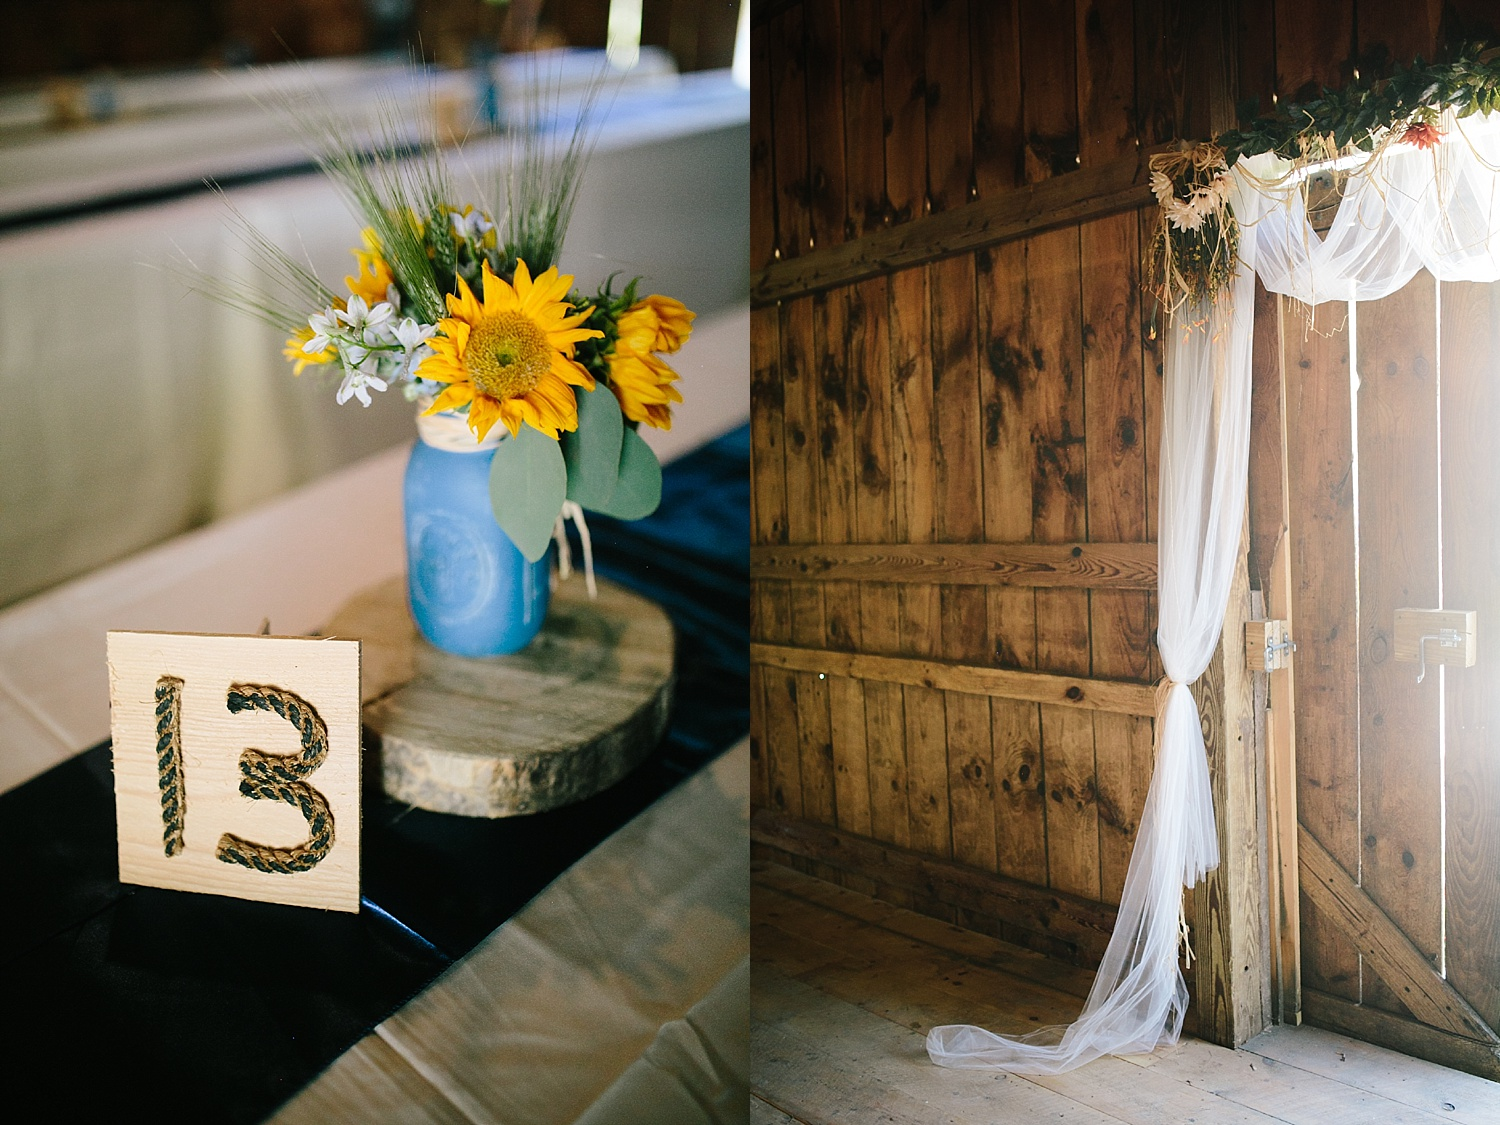 jennyryan_newbeginnings_farmstead_upstatenewyork_wedding_image117.jpg